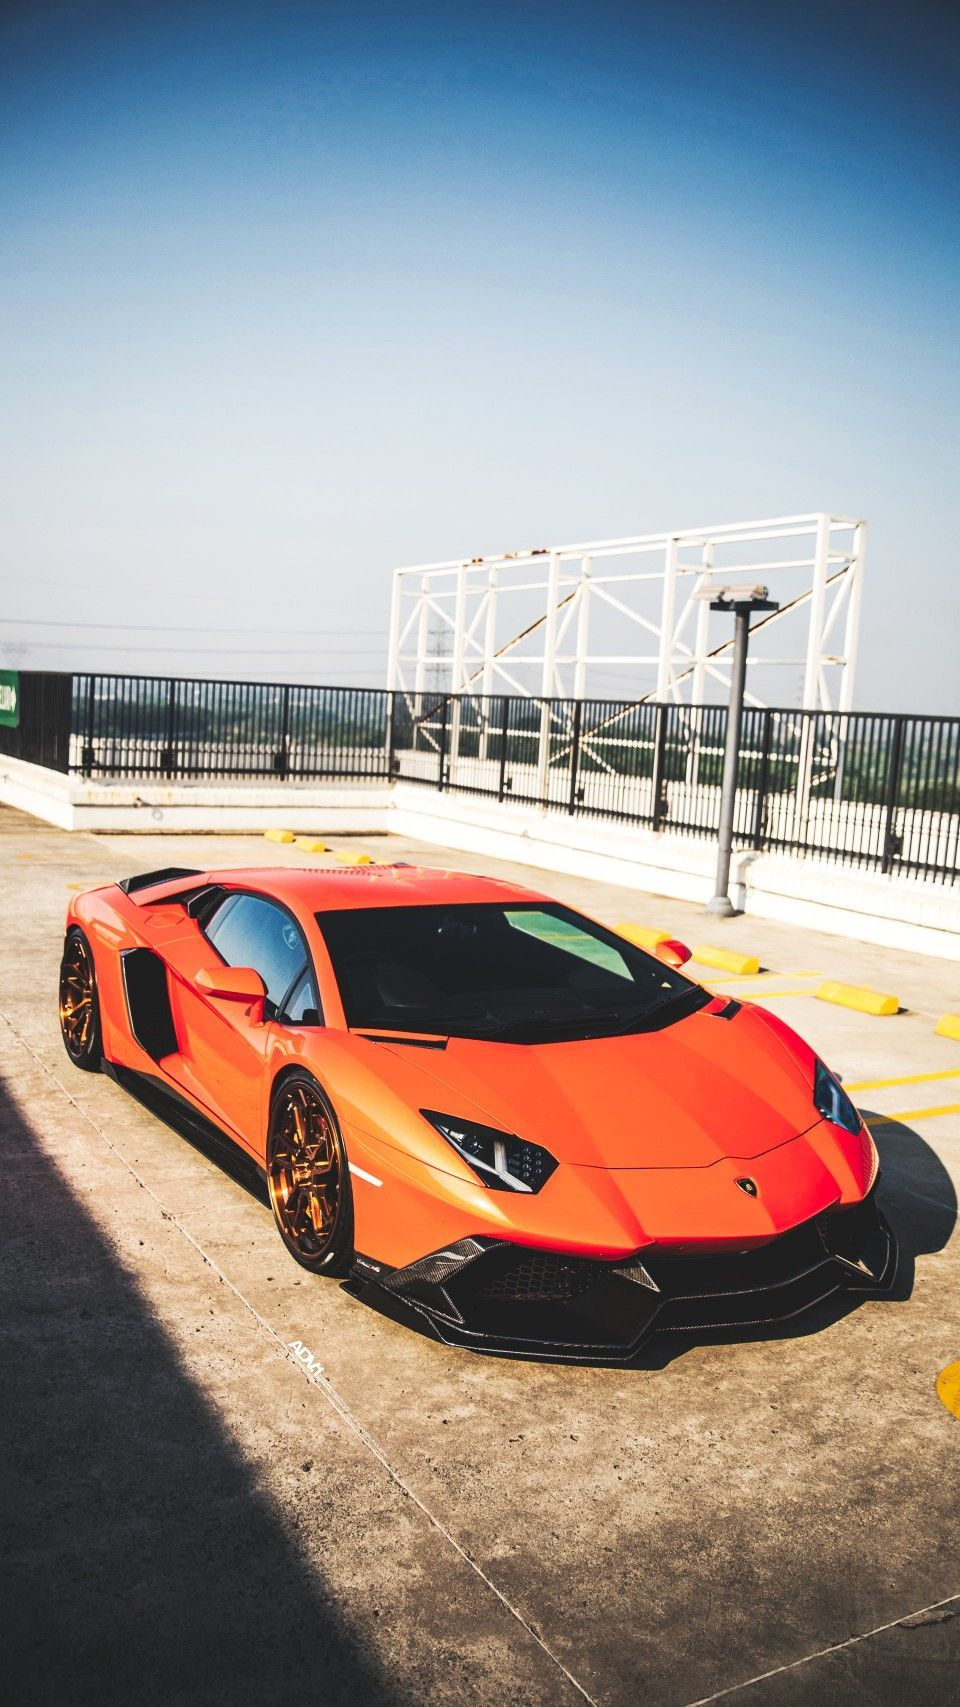 Lamborghini Wallpaper Aventador Iphone Svwallpaper Iphone Lamborghini Aventador Sv Wallpaper Iphone Mobil Sport Mobil